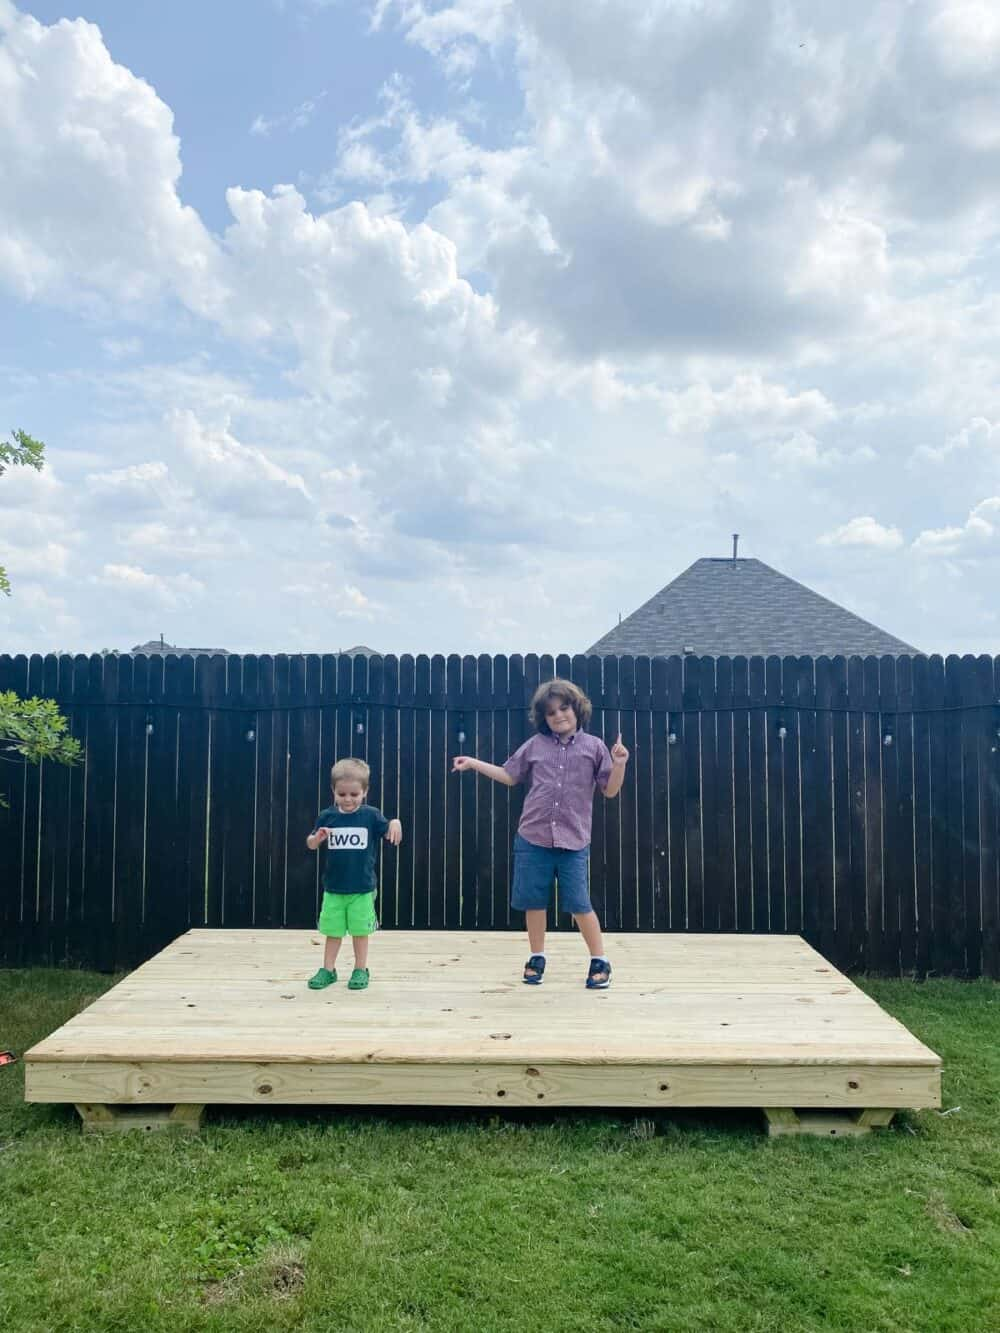 Two young boys on the base of a playhouse